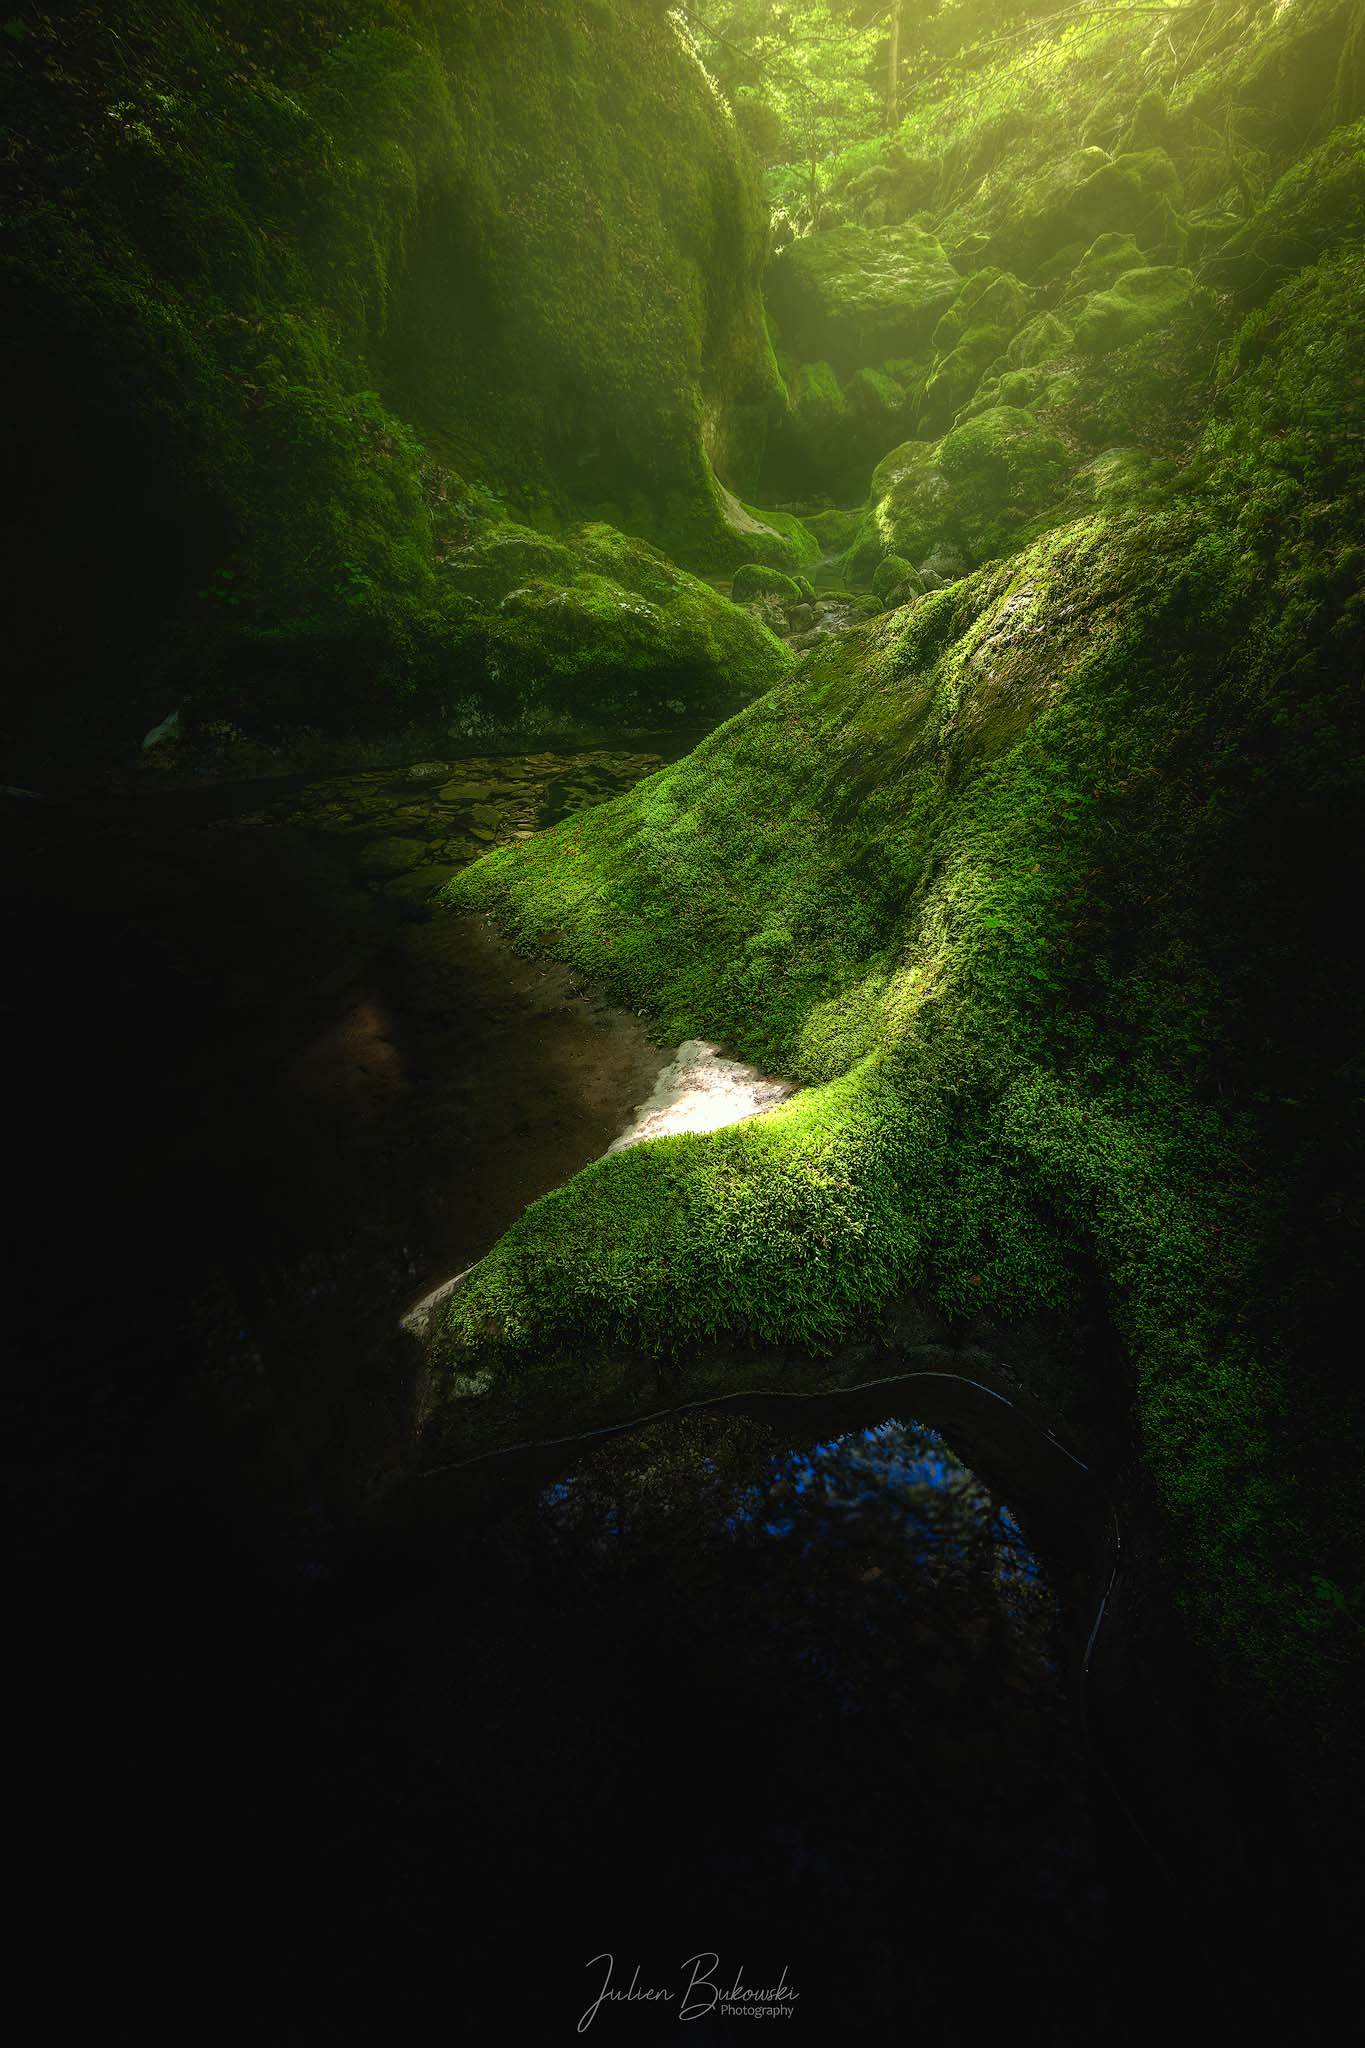 small light for the river (Gorges de la Poeta Raisse - Suisse)